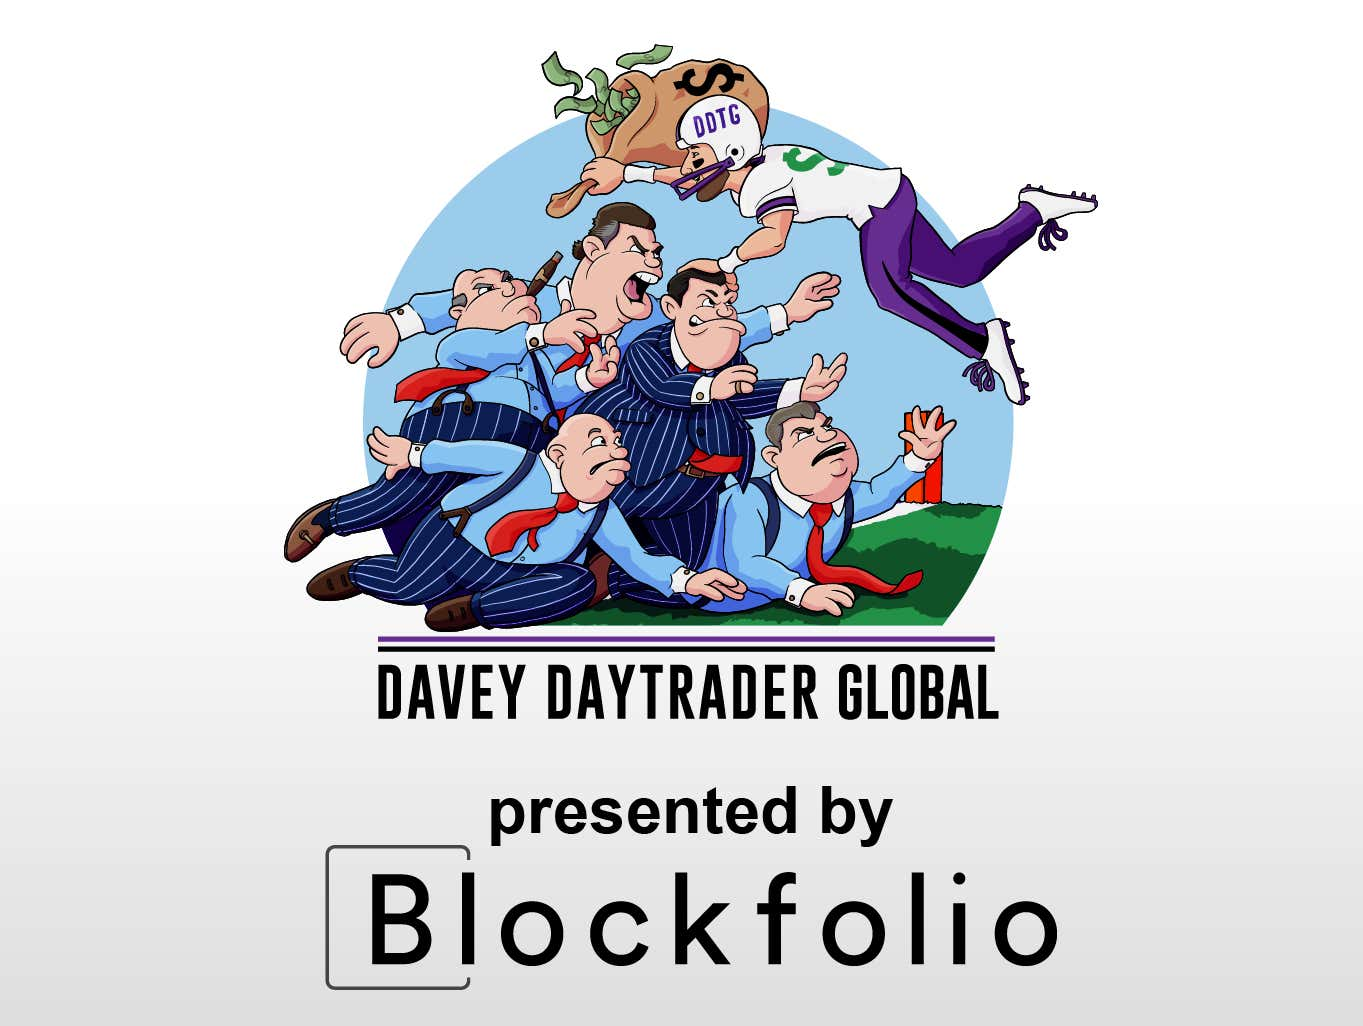 Davey Day Trader presented by Blockfolio - April 15, 2021